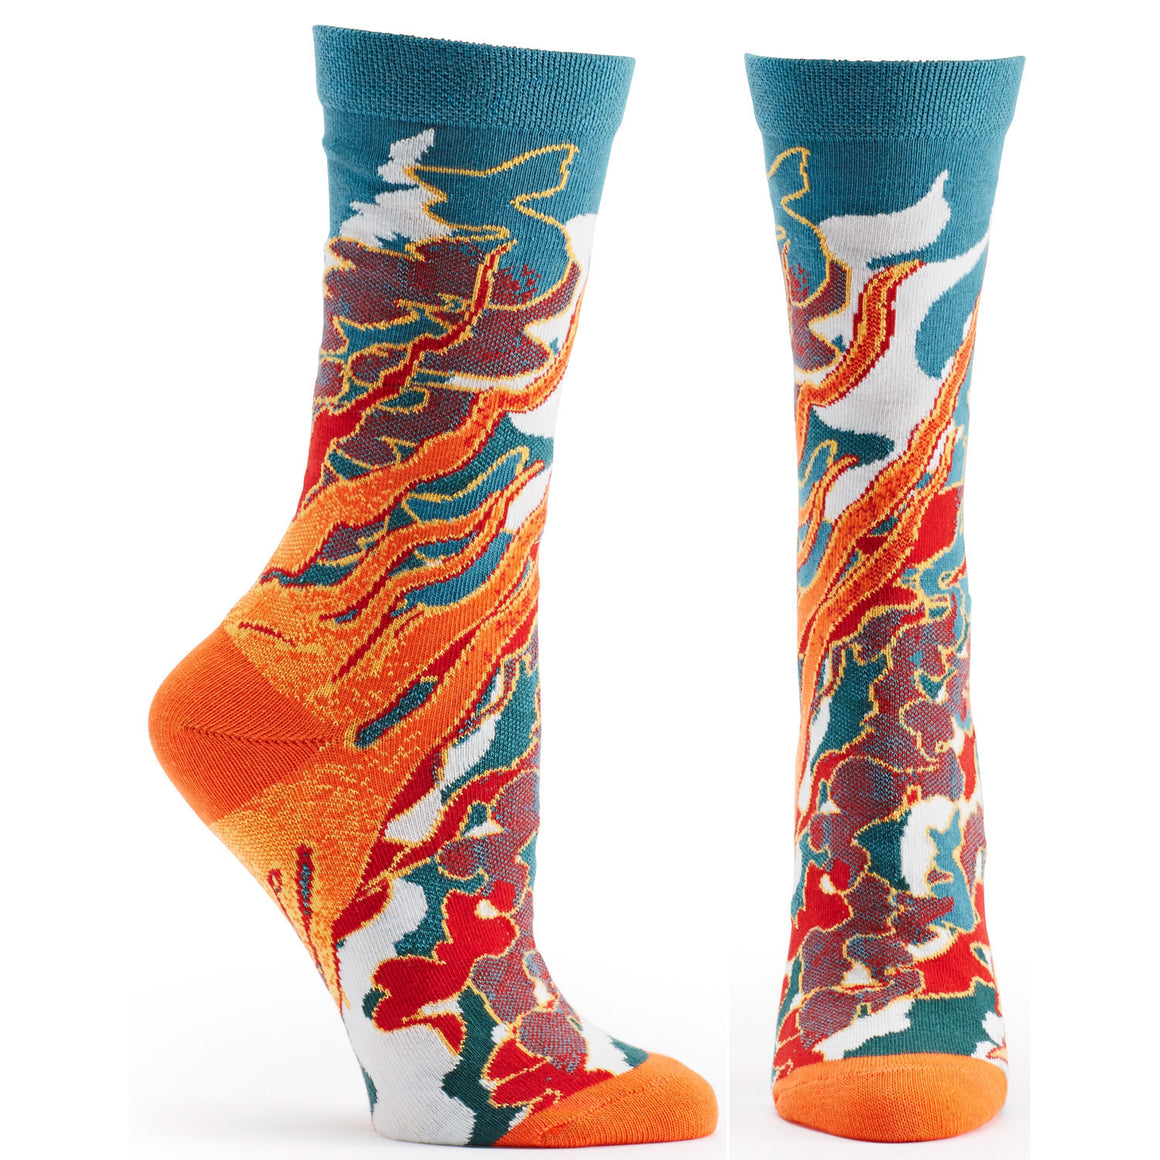 Both feet of Four Elements Fire Sock in Red size 9-11 womens novelty crew from ozone socks